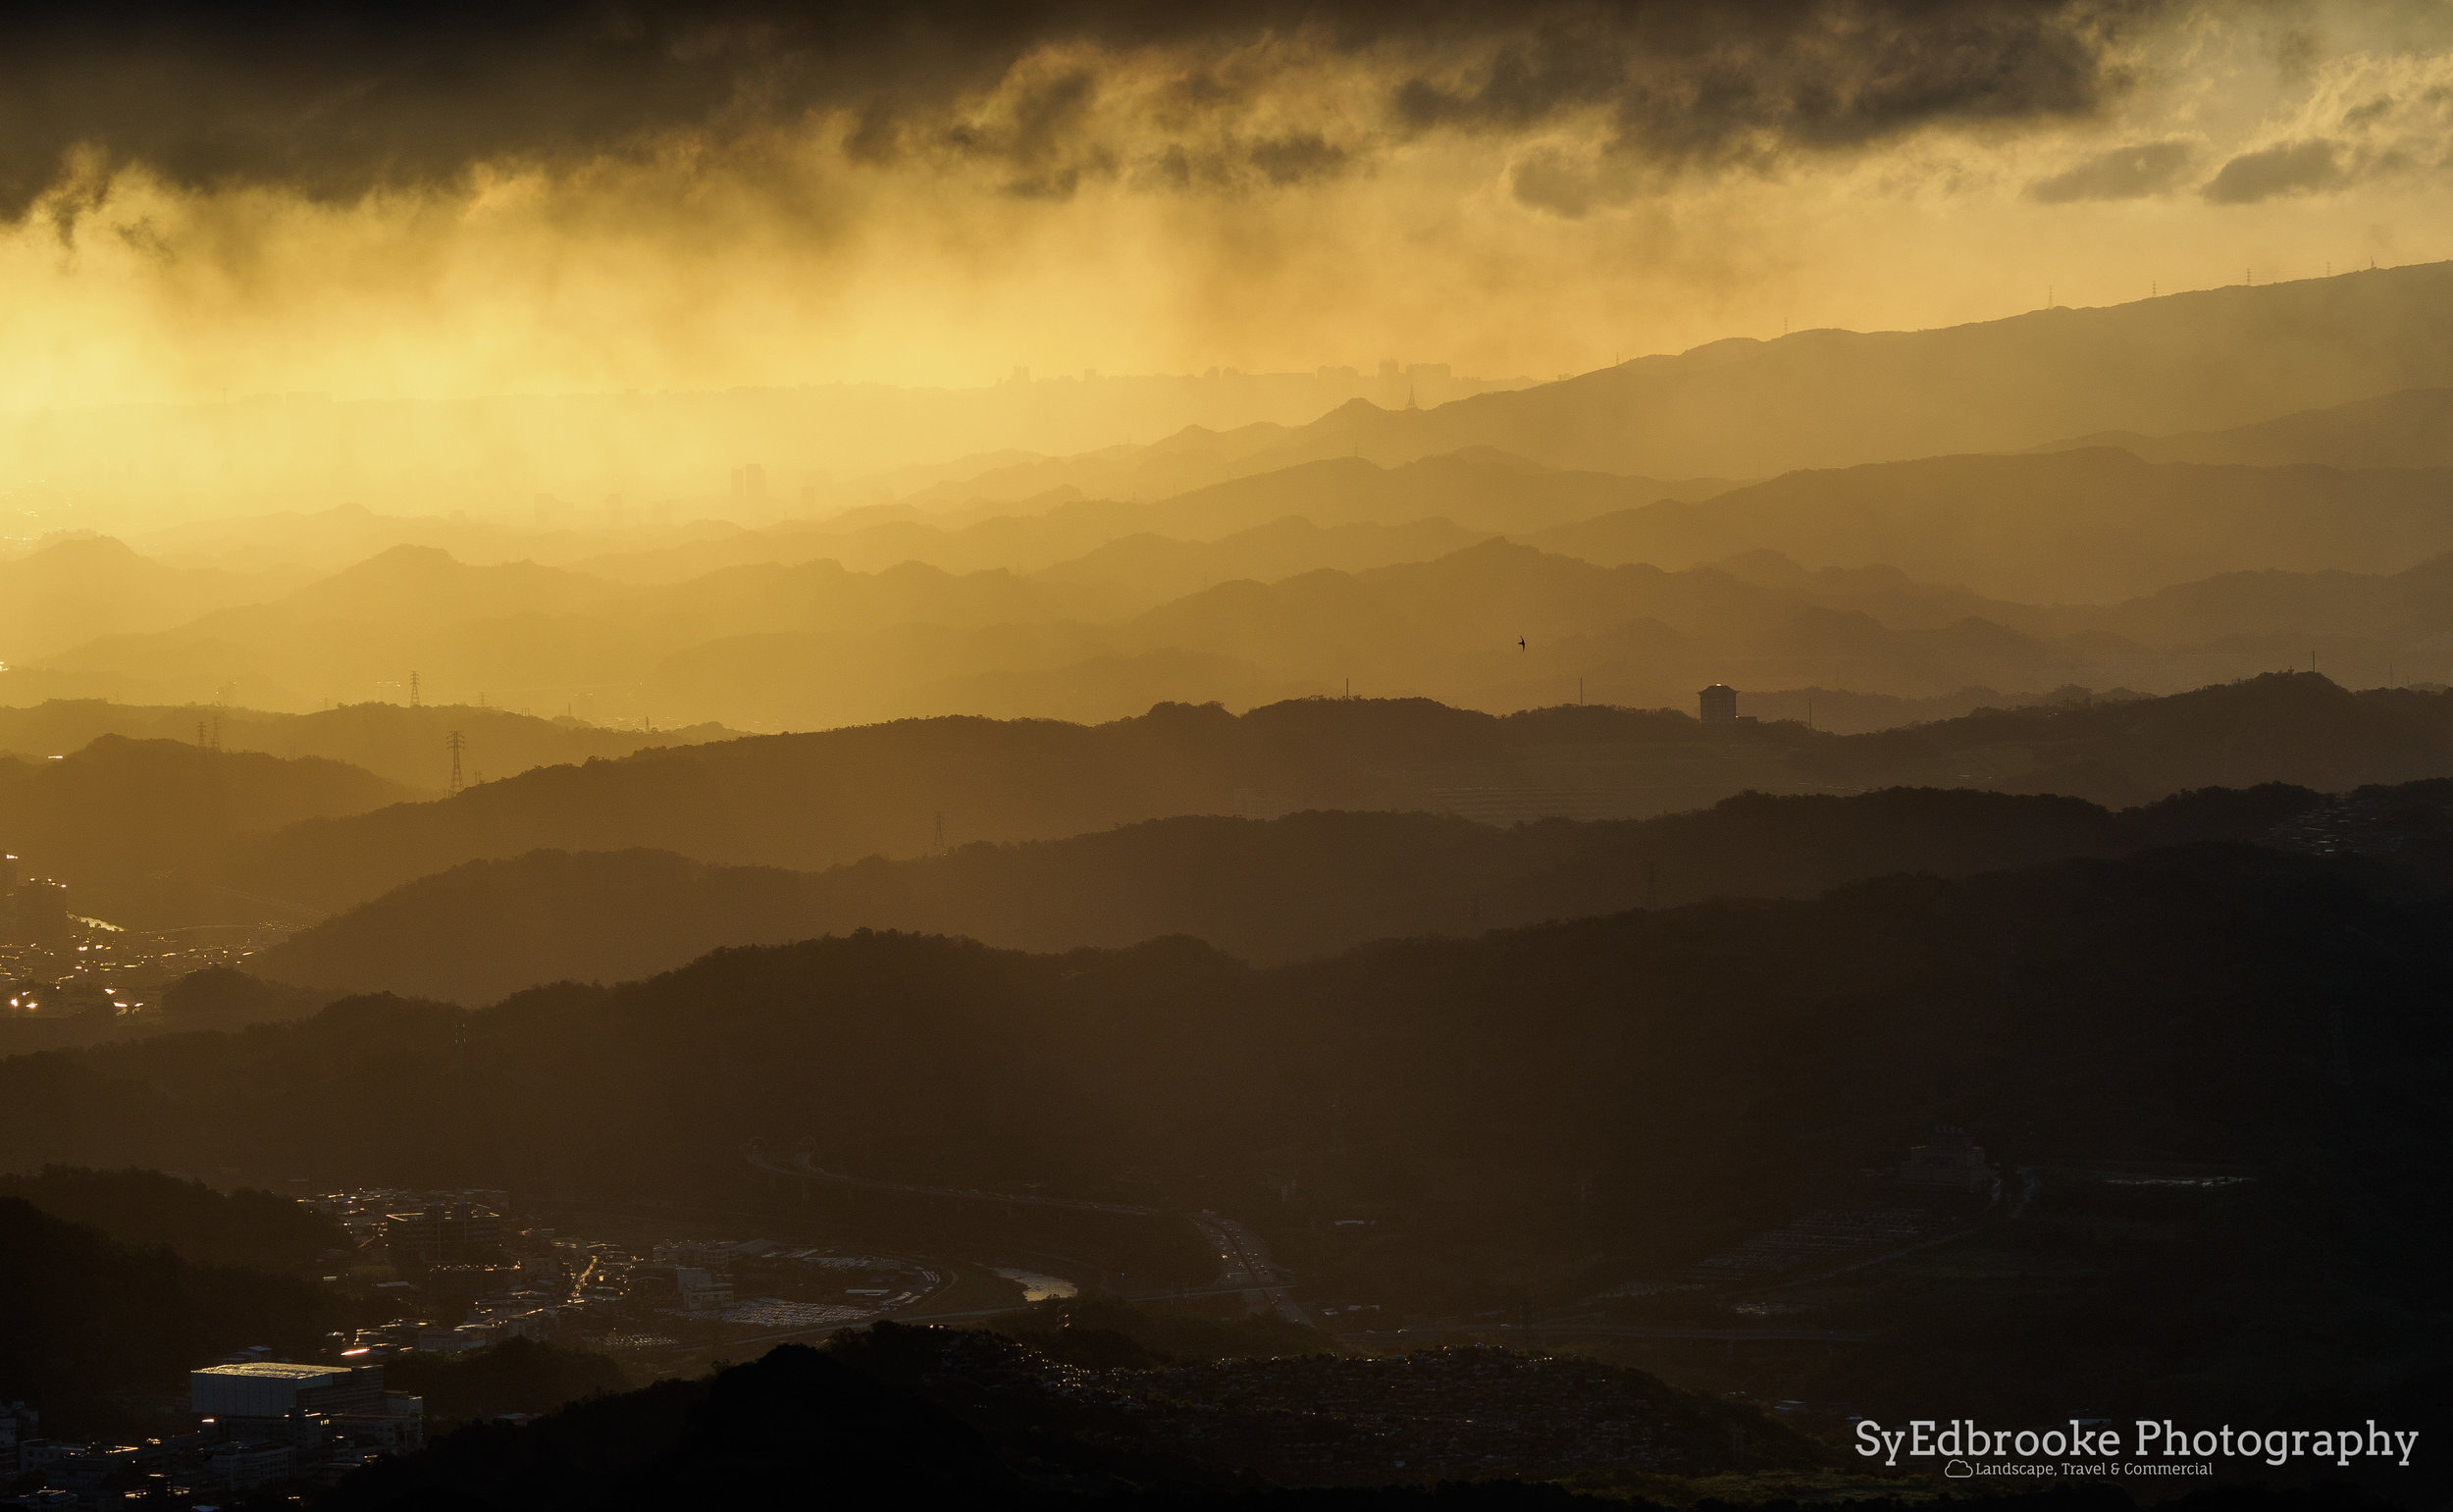 Layers upon layers of mountains. f3.5, ISO 200, 1/640, 150mm